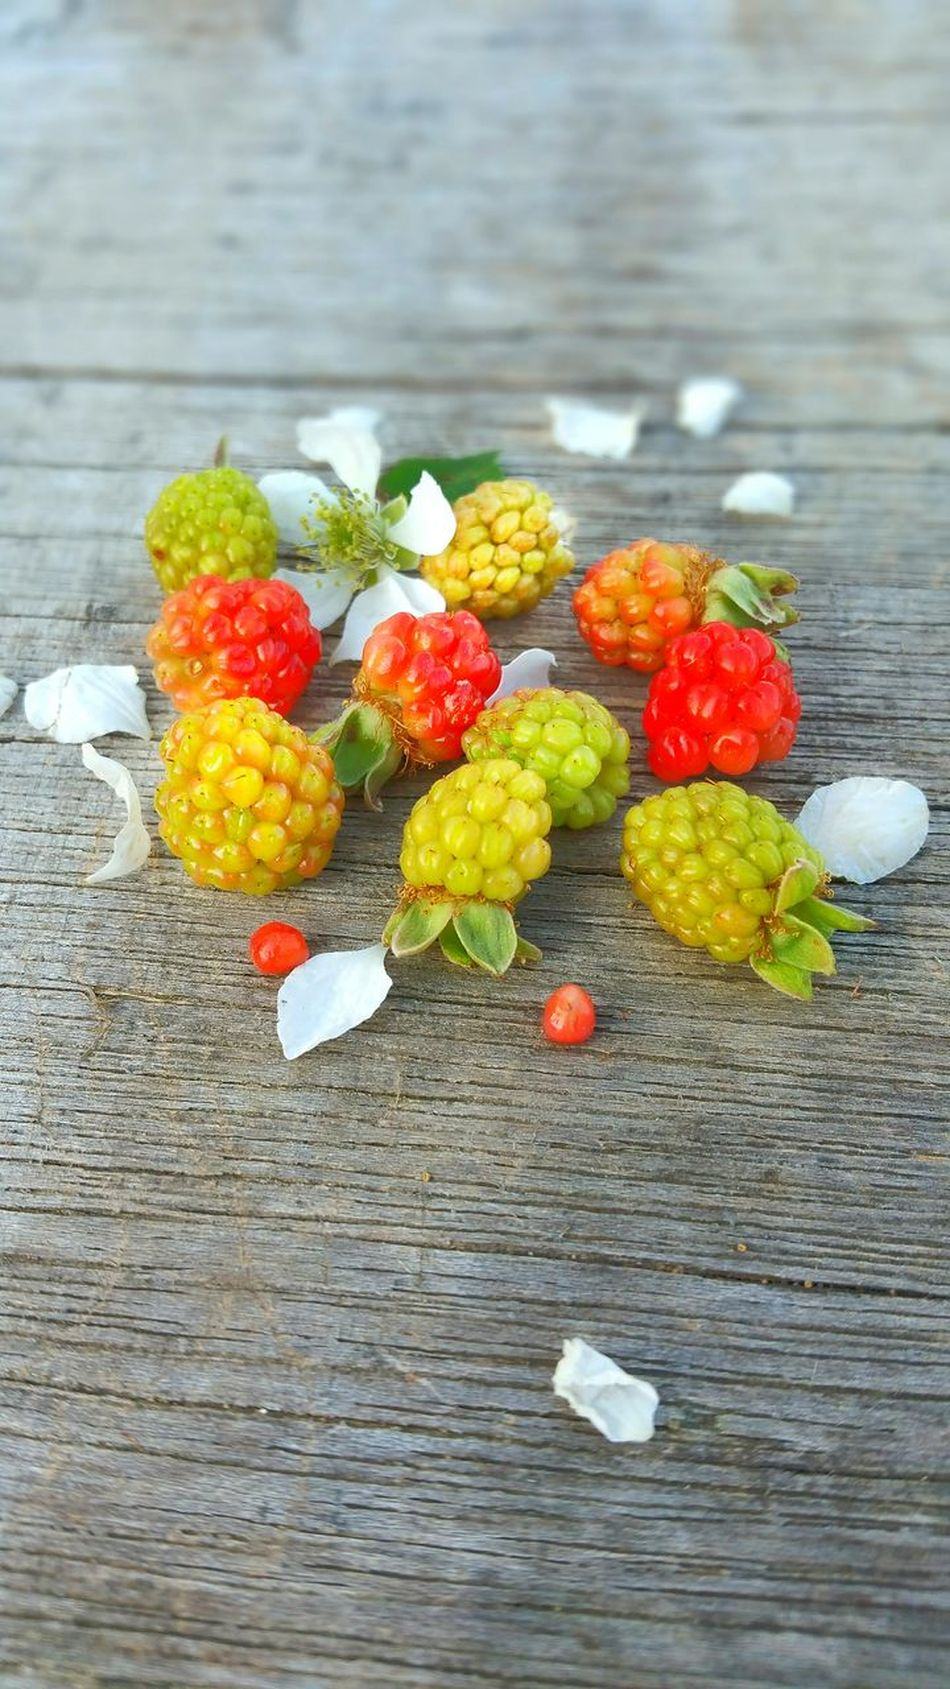 Healthy Eating Fruit Freshness Food Variation Multi Colored Healthy Lifestyle Red Food And Drink No People Close-up Ready-to-eat Outdoors Day Wild Berries Blackberry Dew Berries Weathered Wood Backgrounds Wild Blackberries Unripe Room For Copy Room For Text Wild Flower